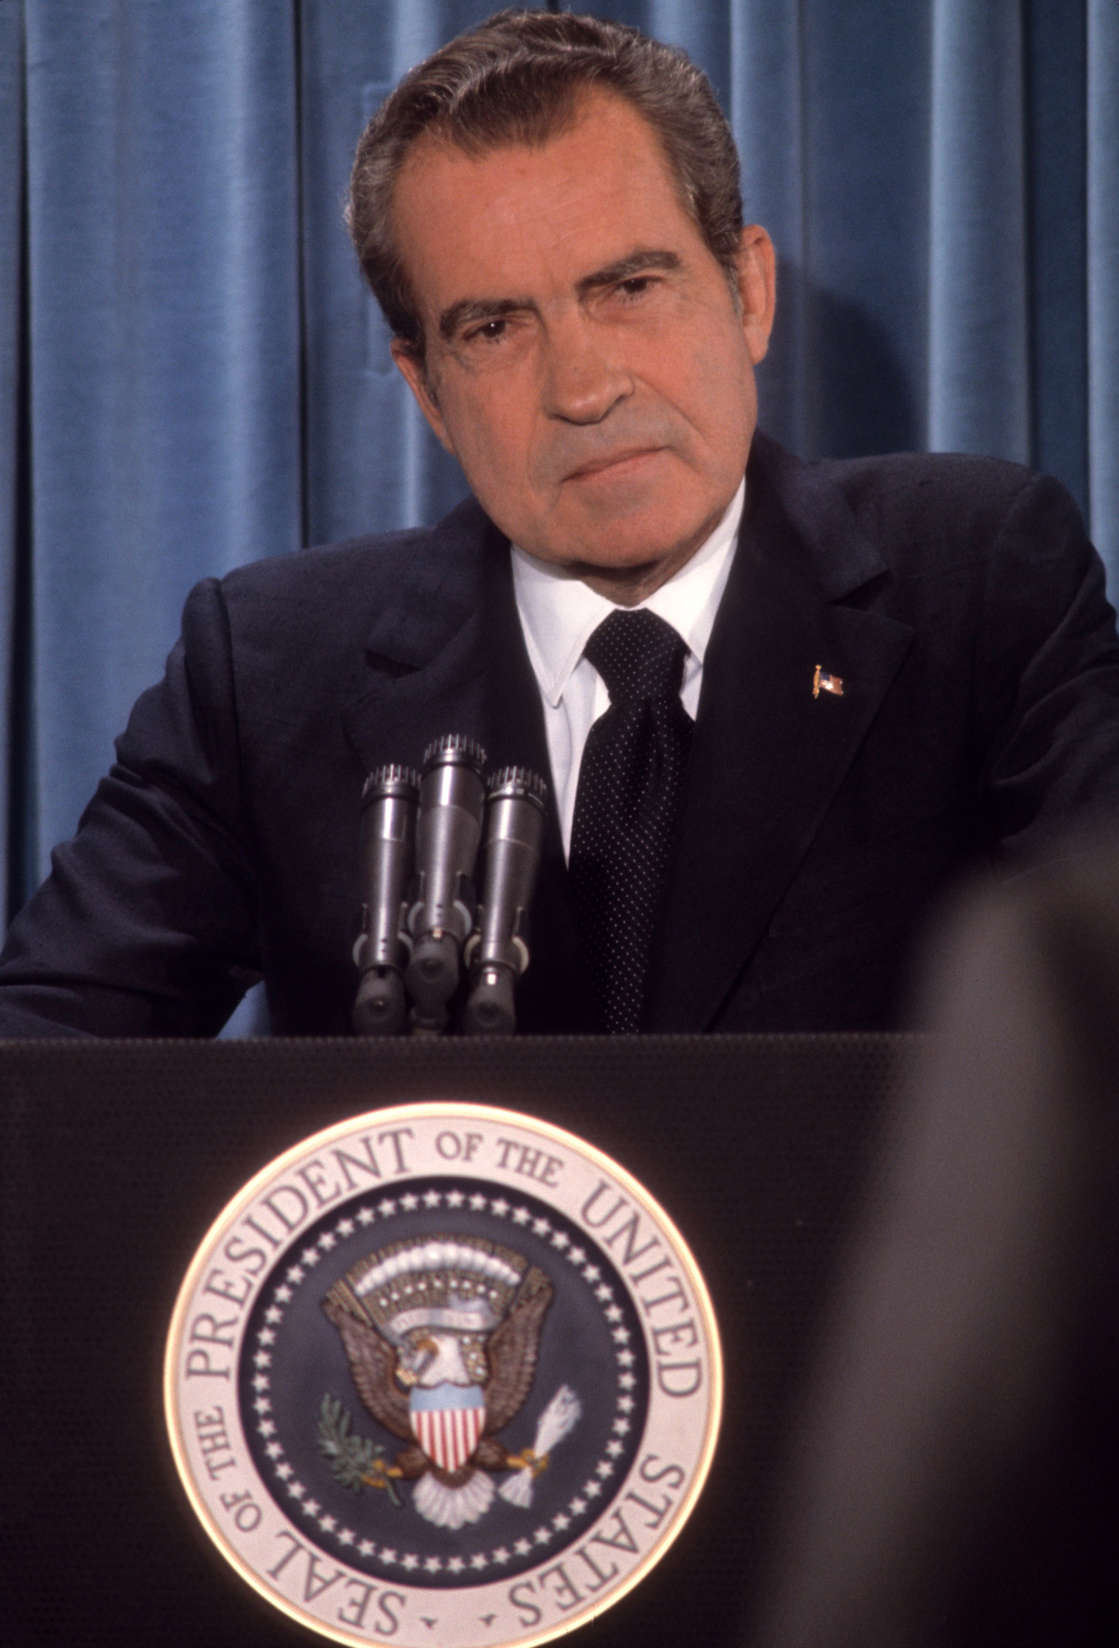 President Richard Nixon at a press conference, Washington DC, September 5, 1973 (Photo by David Hume Kennerly/Getty Images)